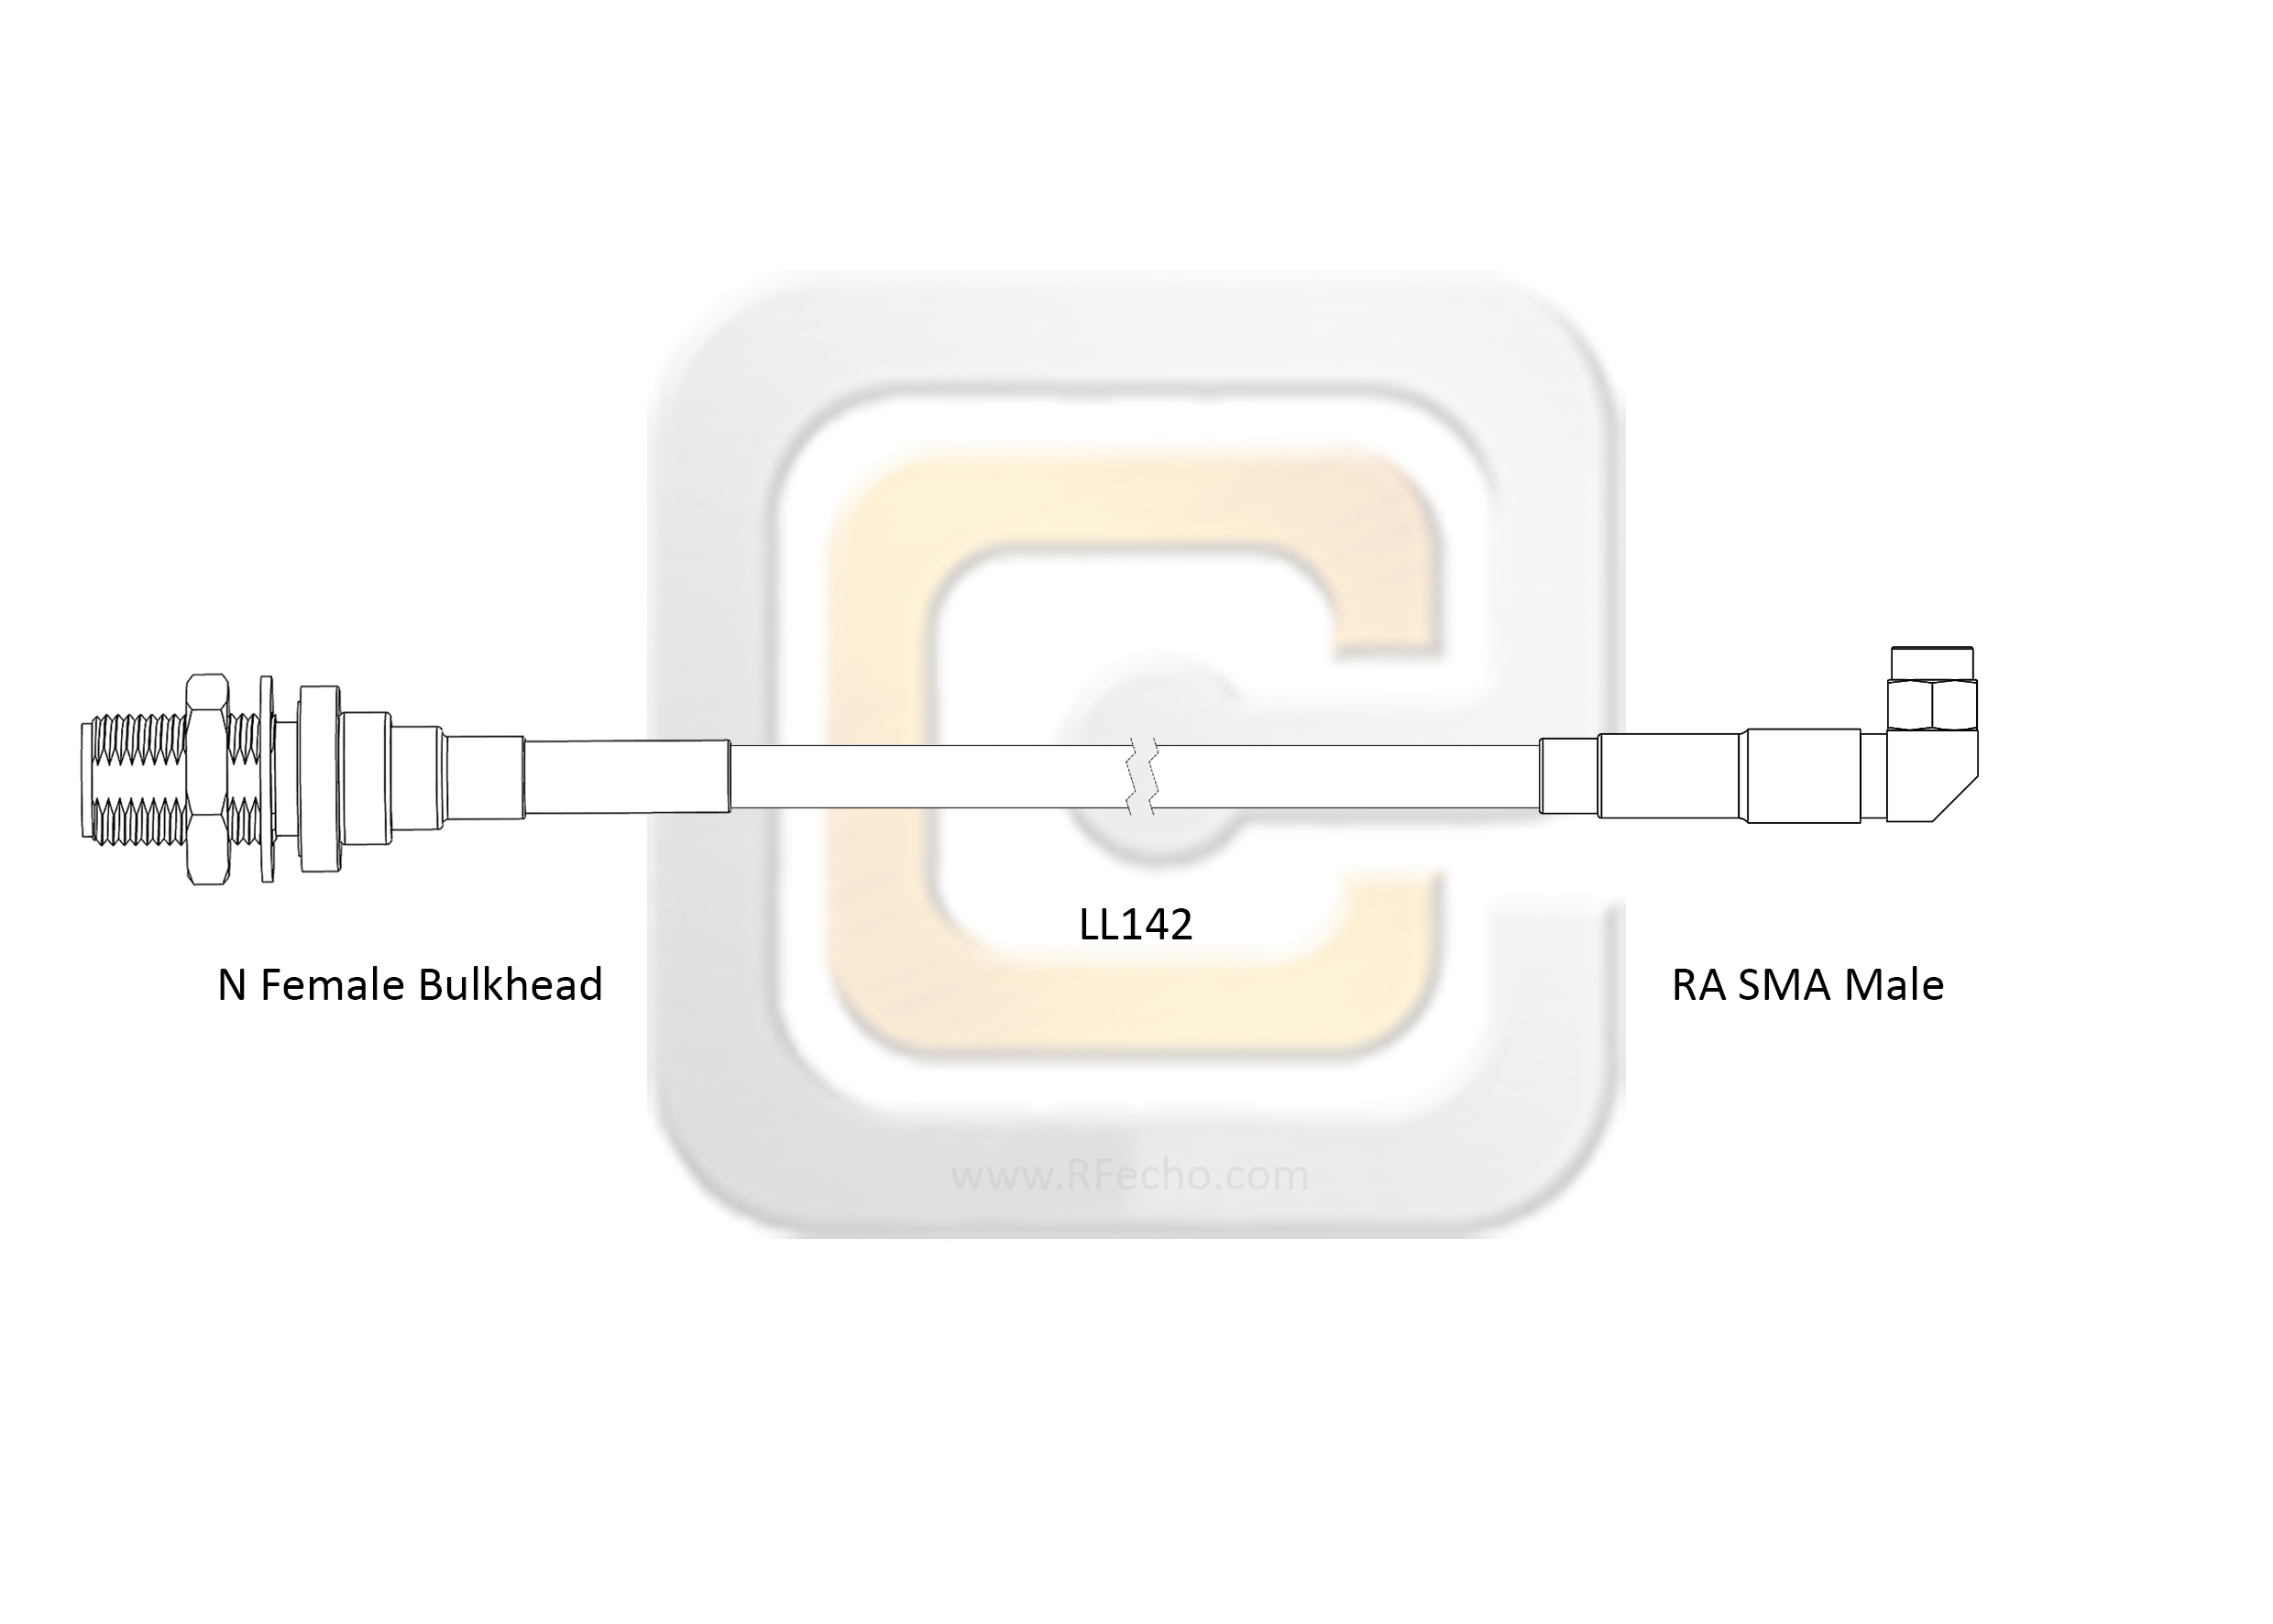 F038 321R0 290S1 180 N outline Low Loss Right Angle SMA Male to N Female Bulkhead, 18 GHz,  LL142 Coax and RoHS